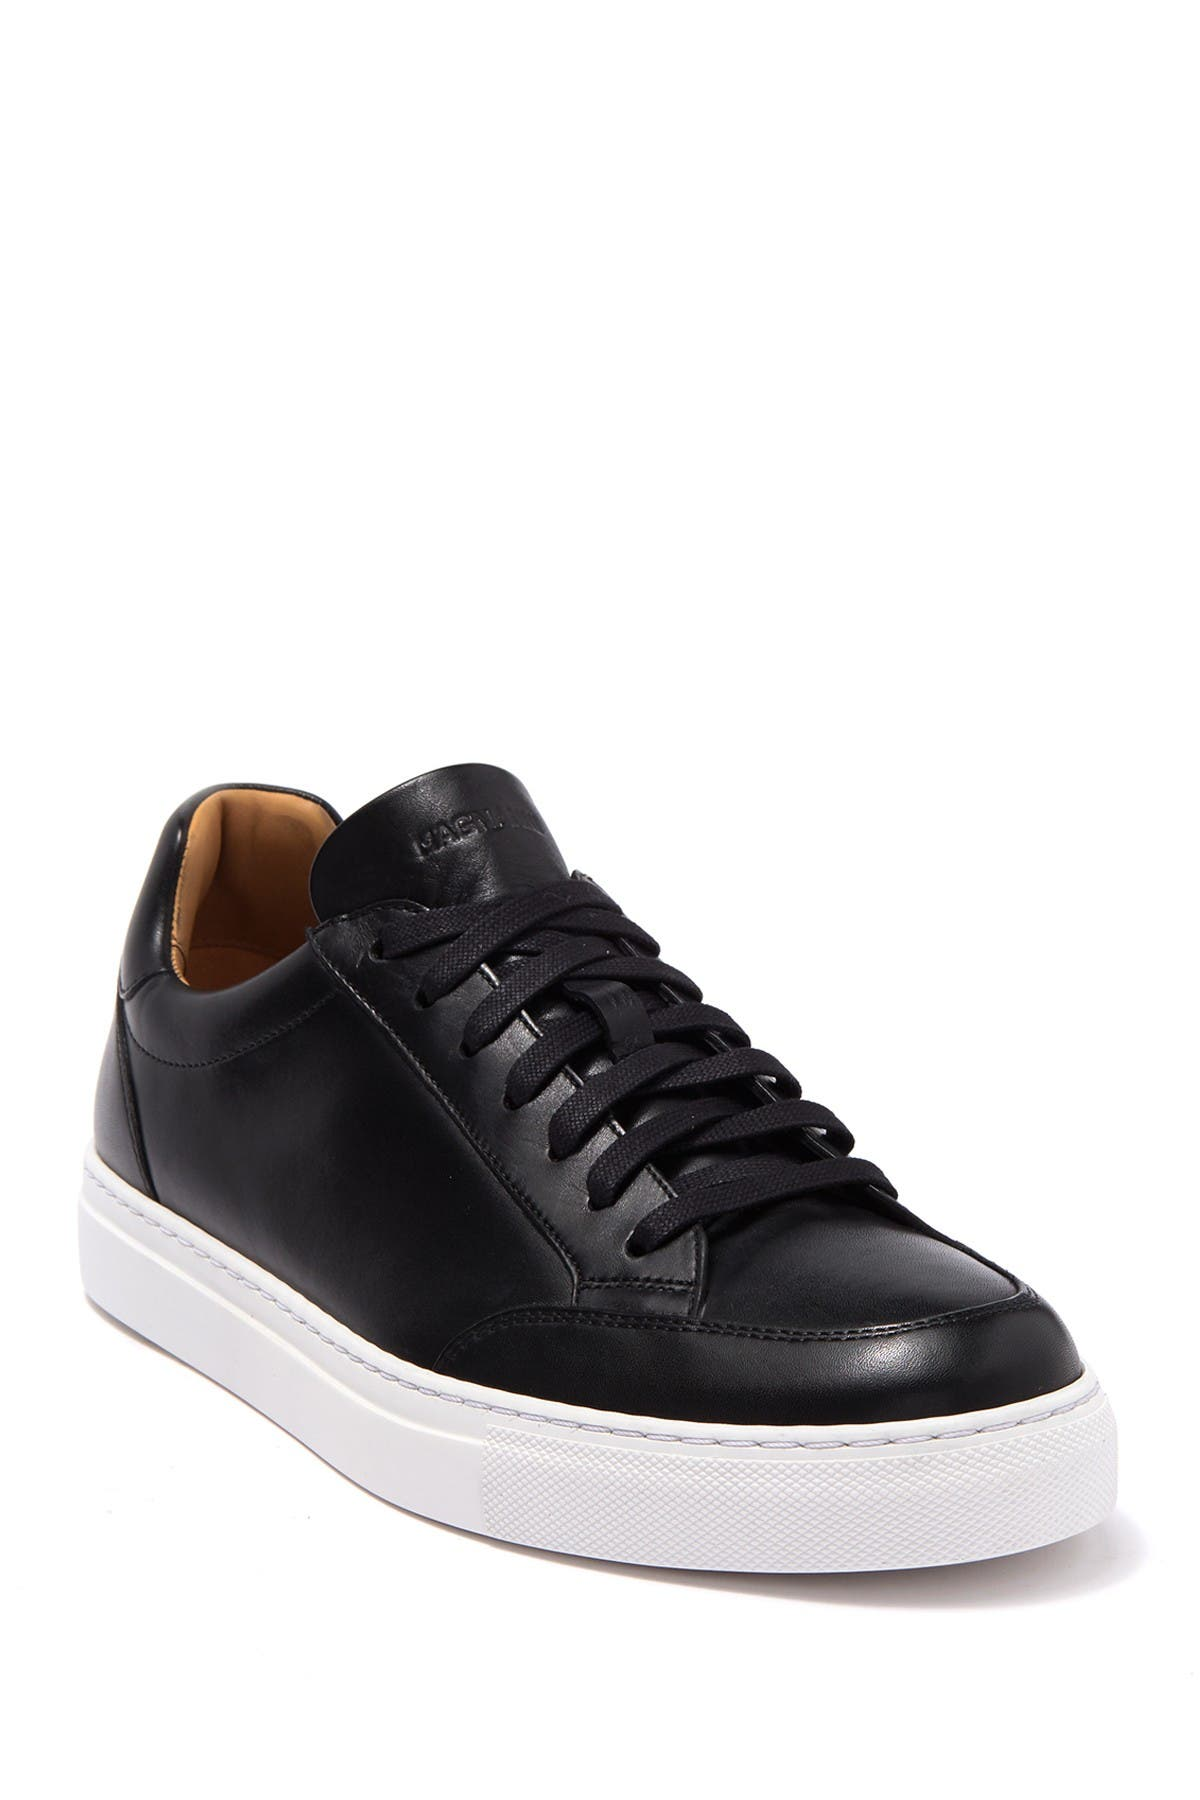 Image of Magnanni Daewon Leather Sneaker